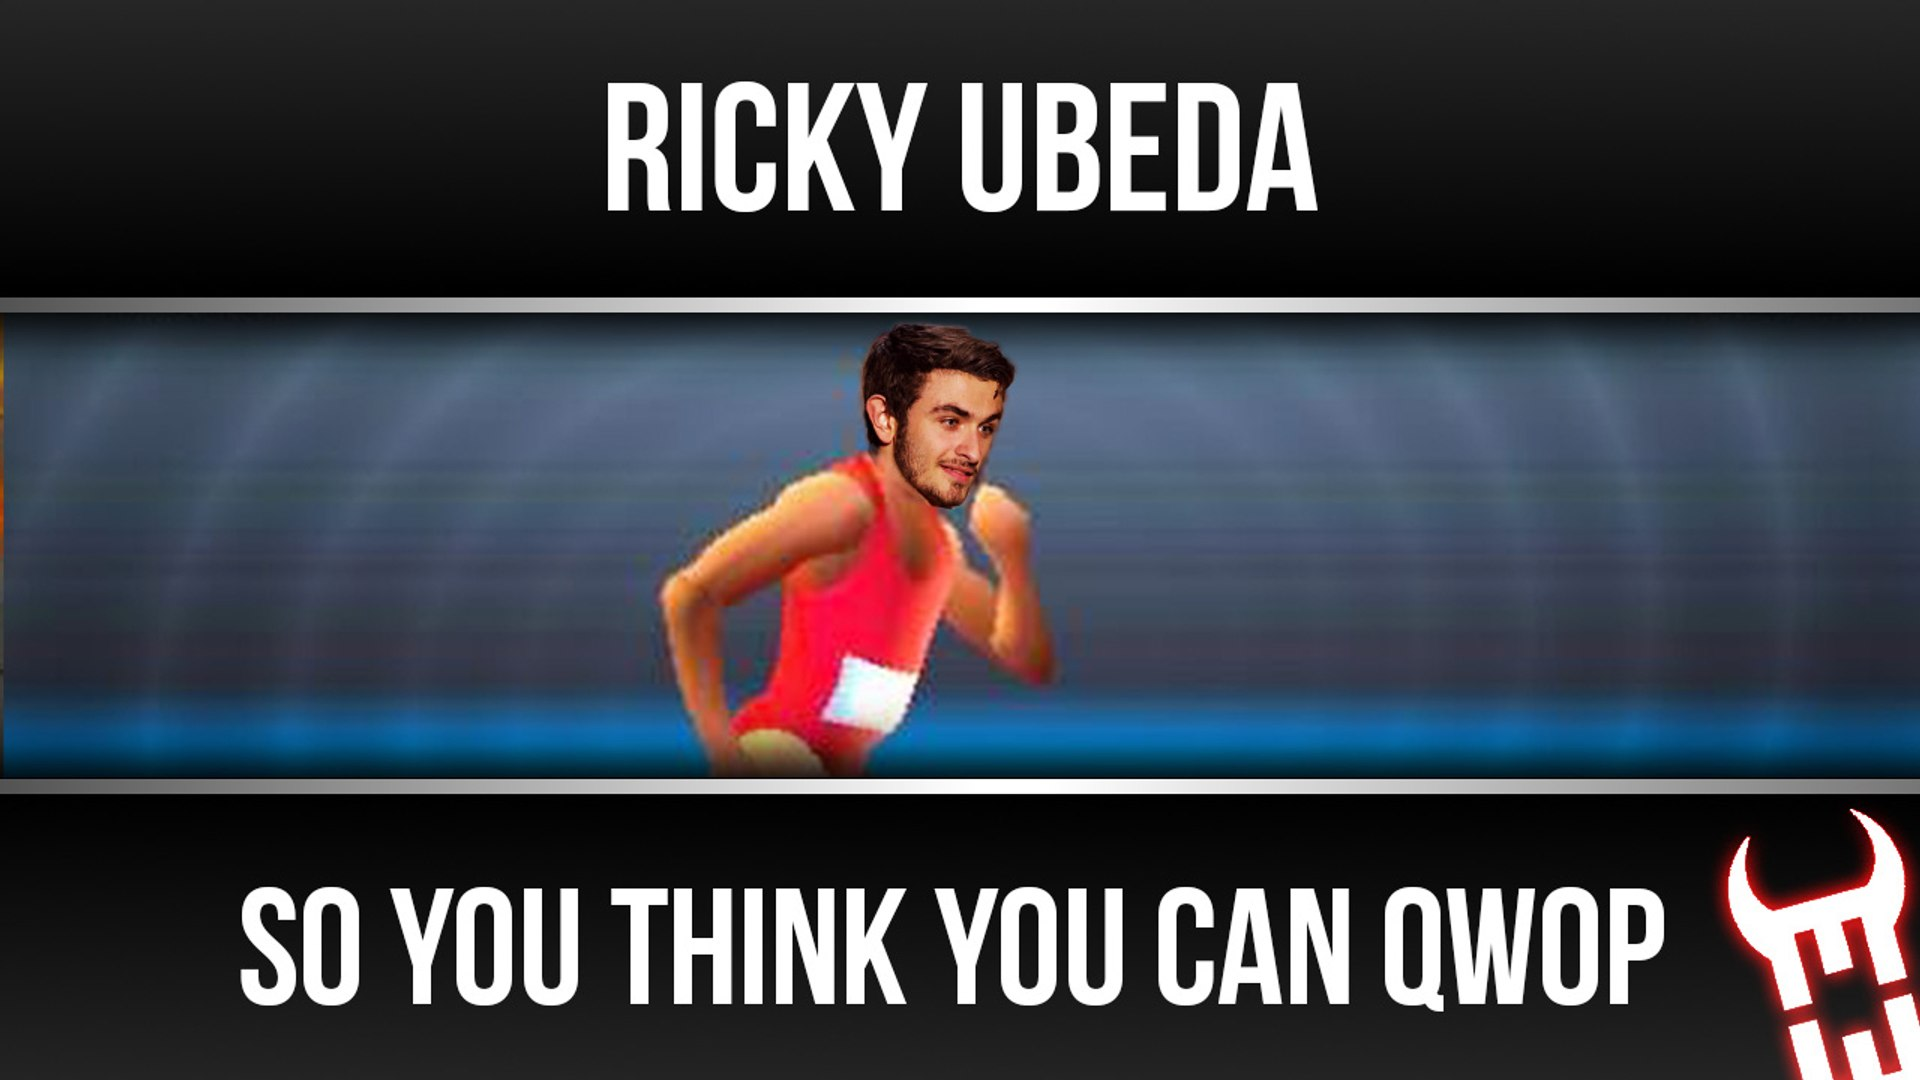 So you think you can QWOP